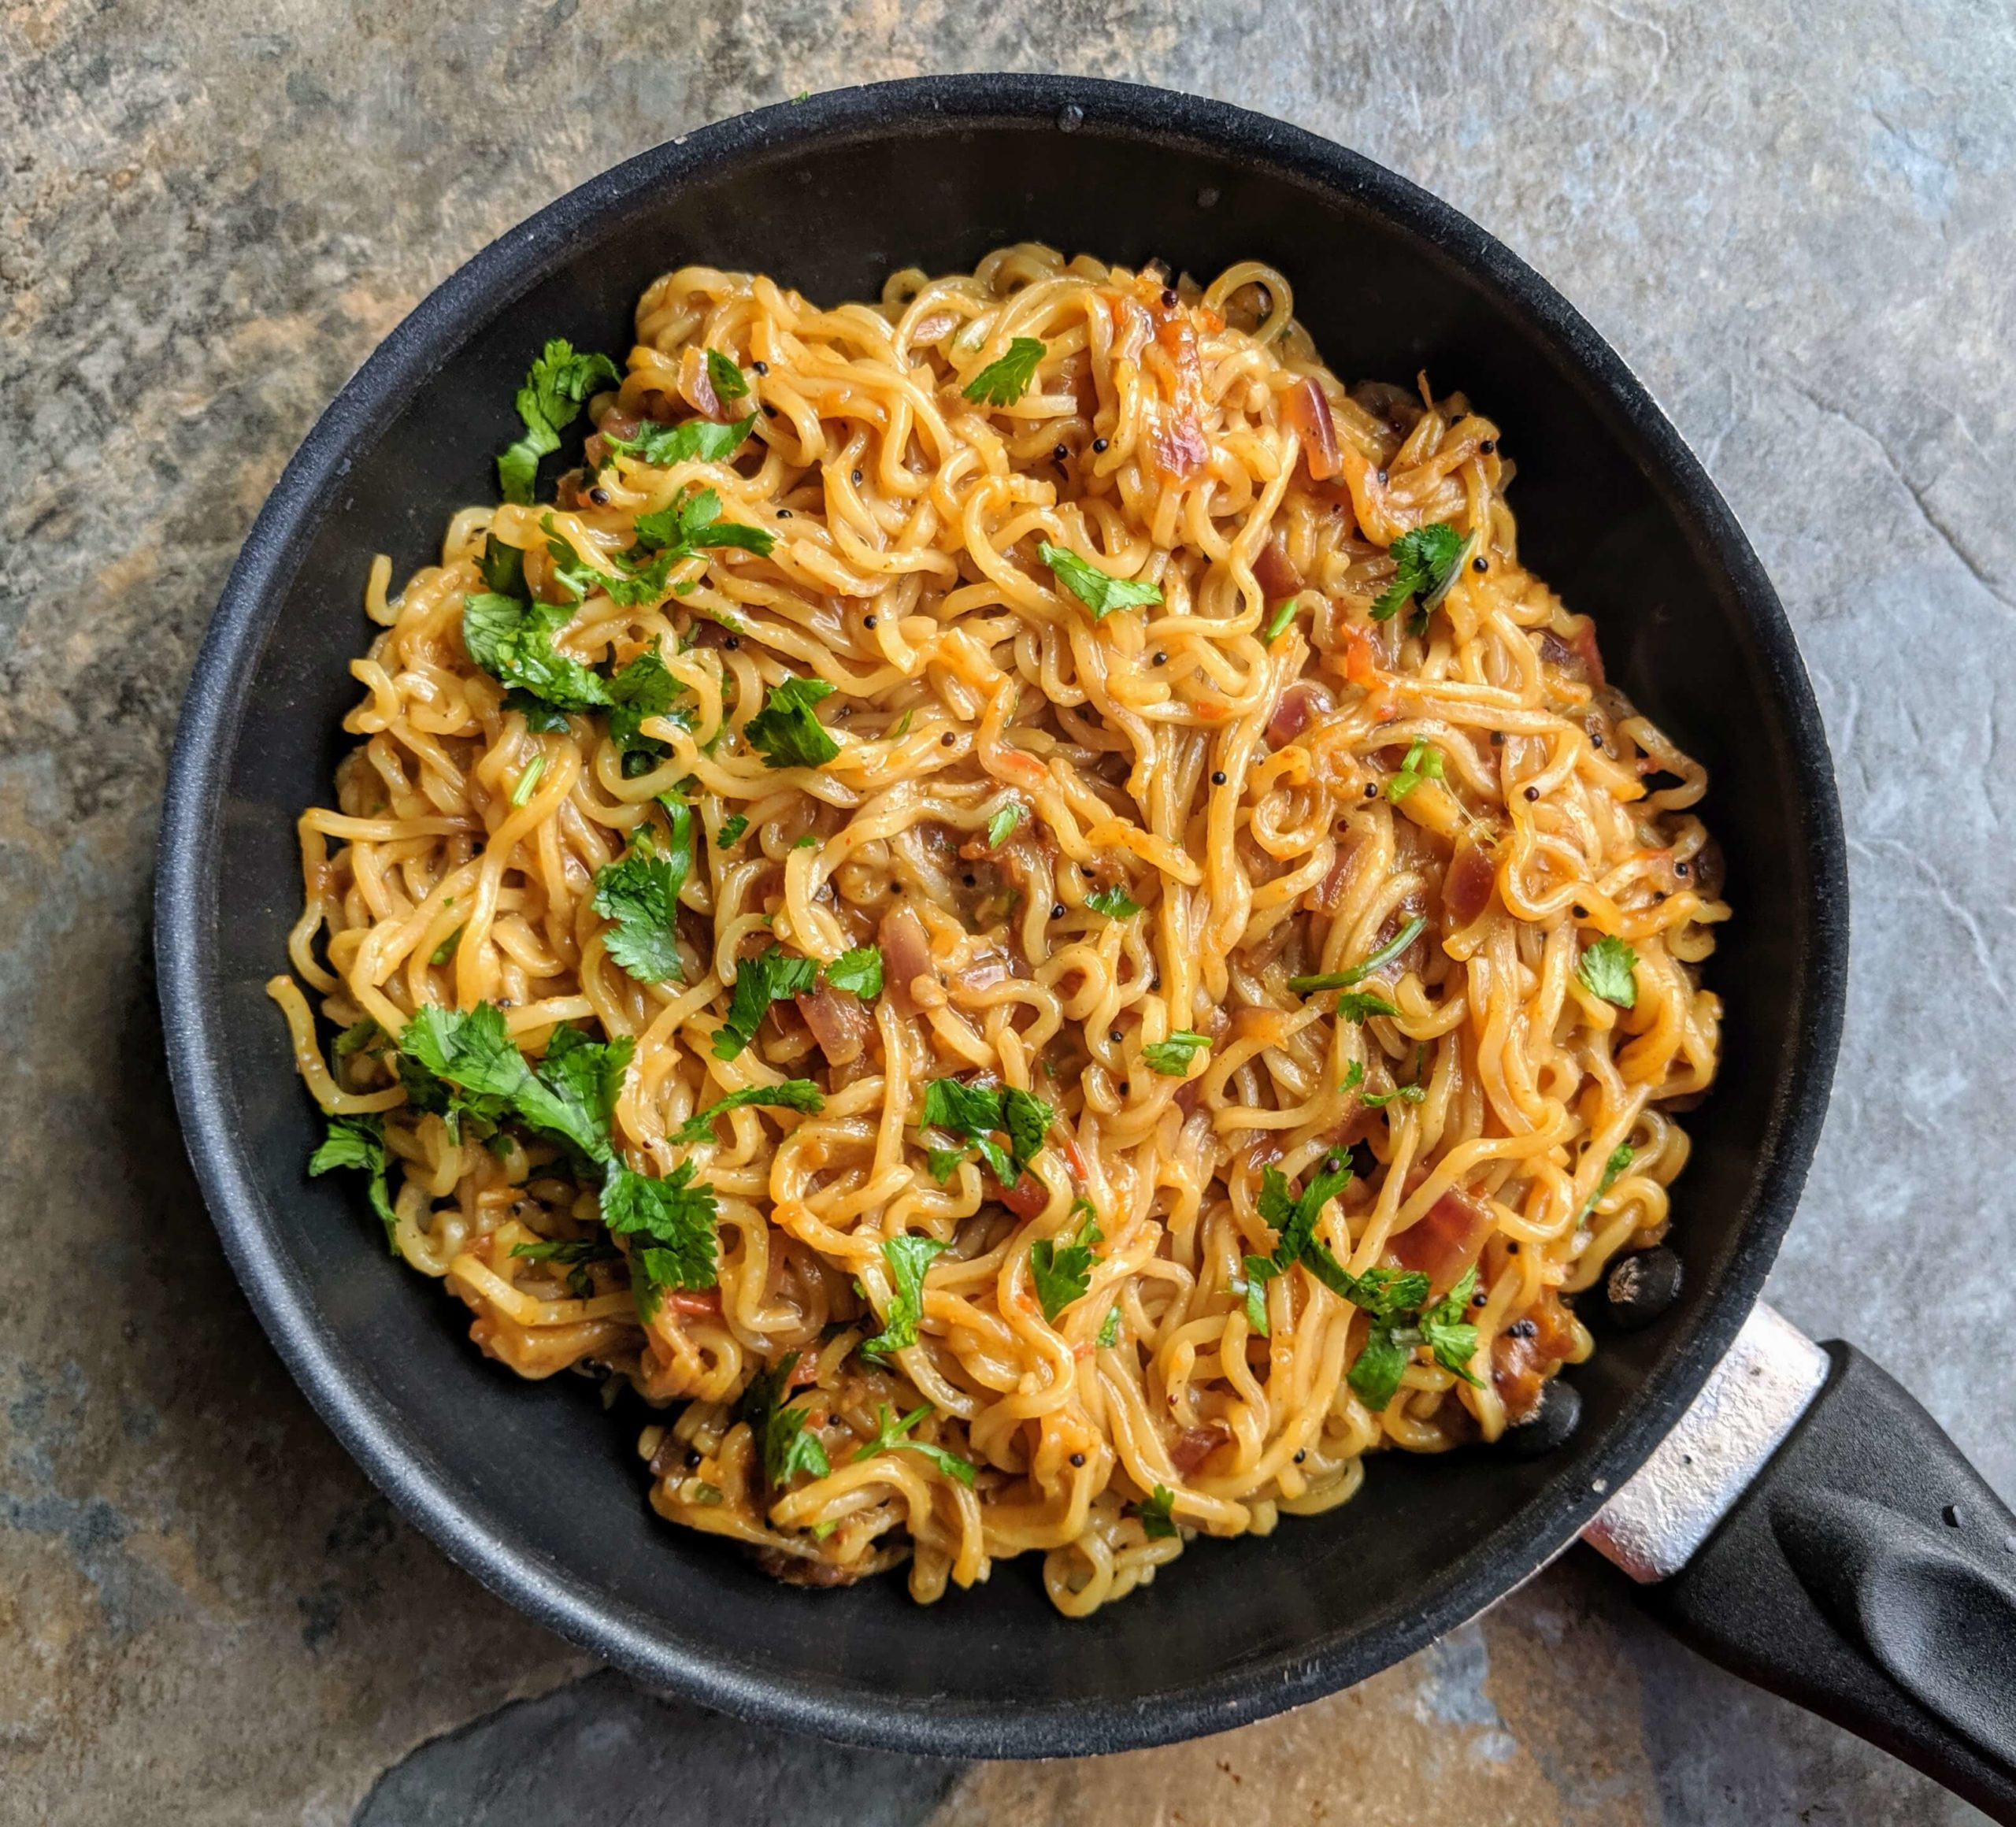 Street style maggi noodles are a spicy snack made by tossing maggi noodles in an onion tomato masala along with some spices.